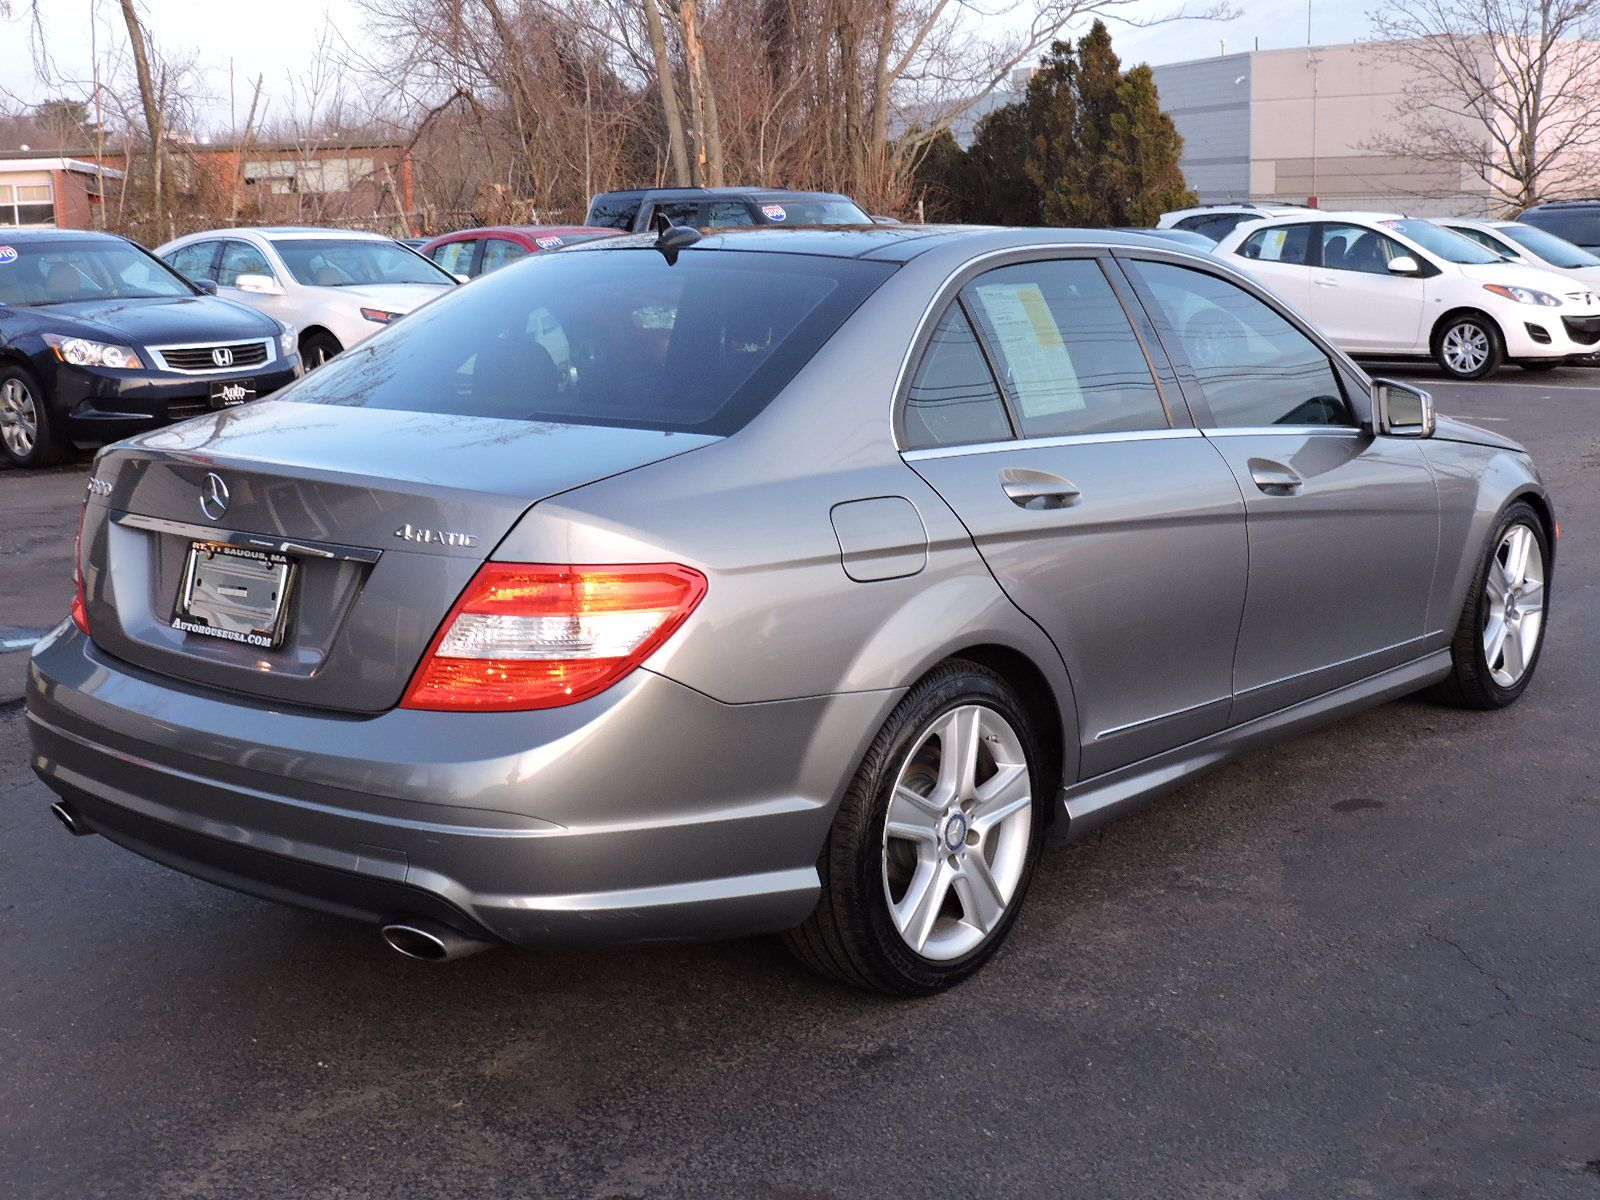 Used 2010 mercedes benz c class c300 sport at saugus auto mall for 2010 mercedes benz c300 price